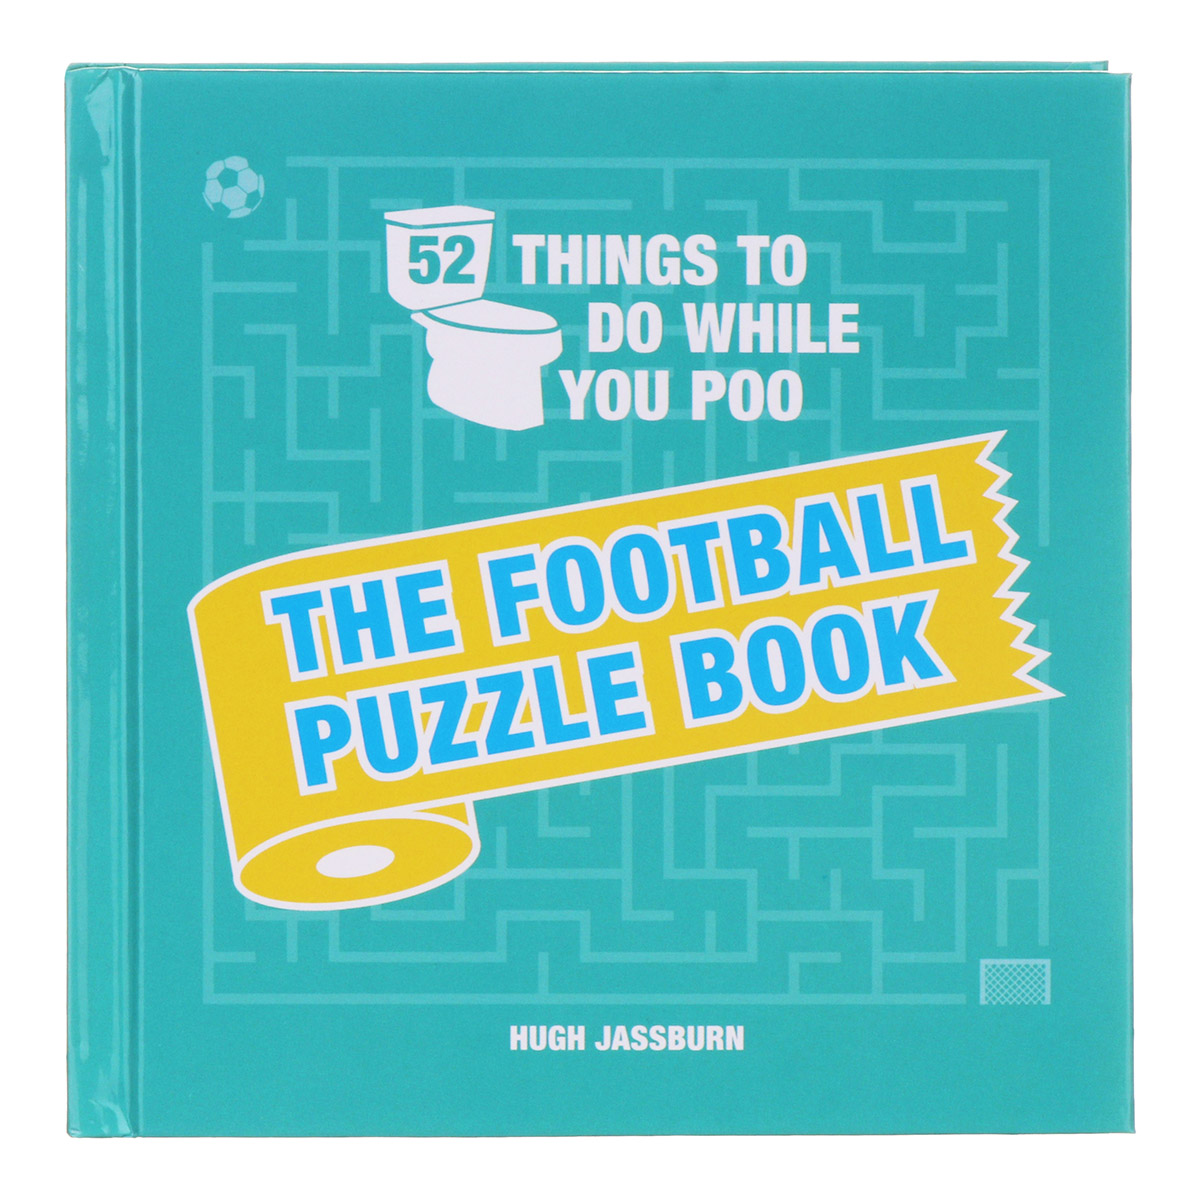 52 Things To Do While You Poo:Football Puzzle Book